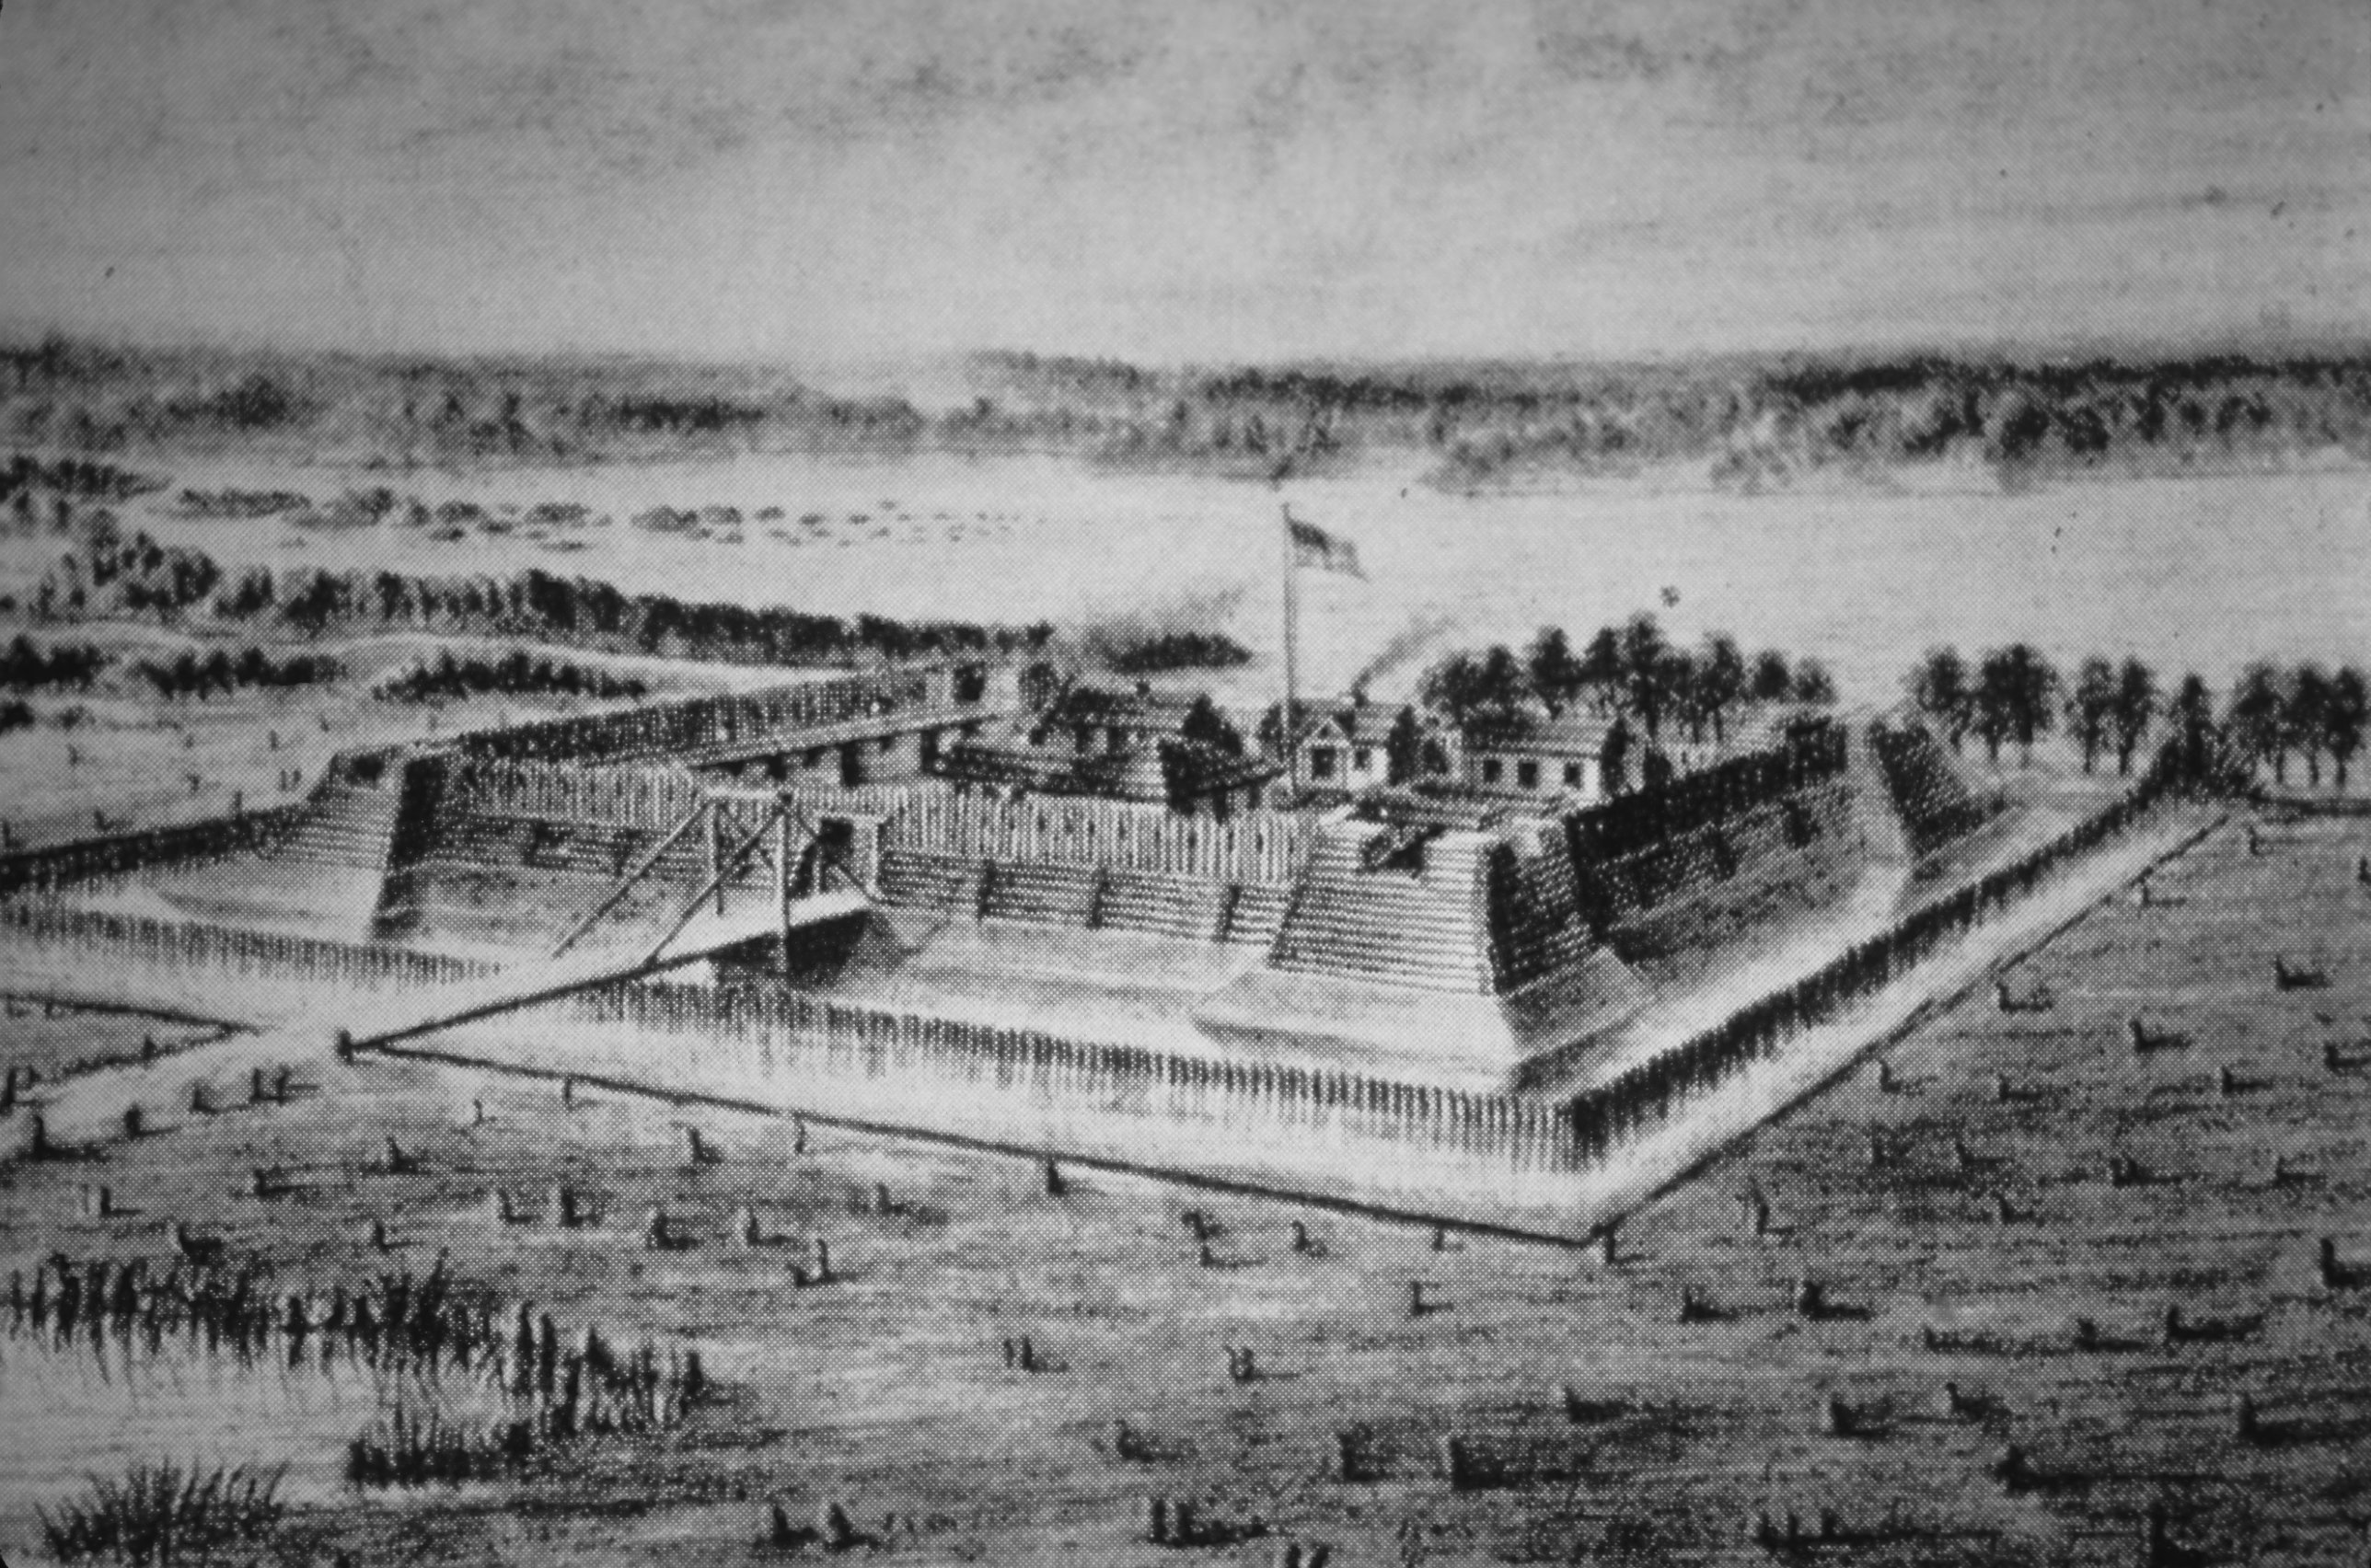 Fort Nelson - Note on slide: Sketch by Col. Durrett Filson Club 1885, 1782